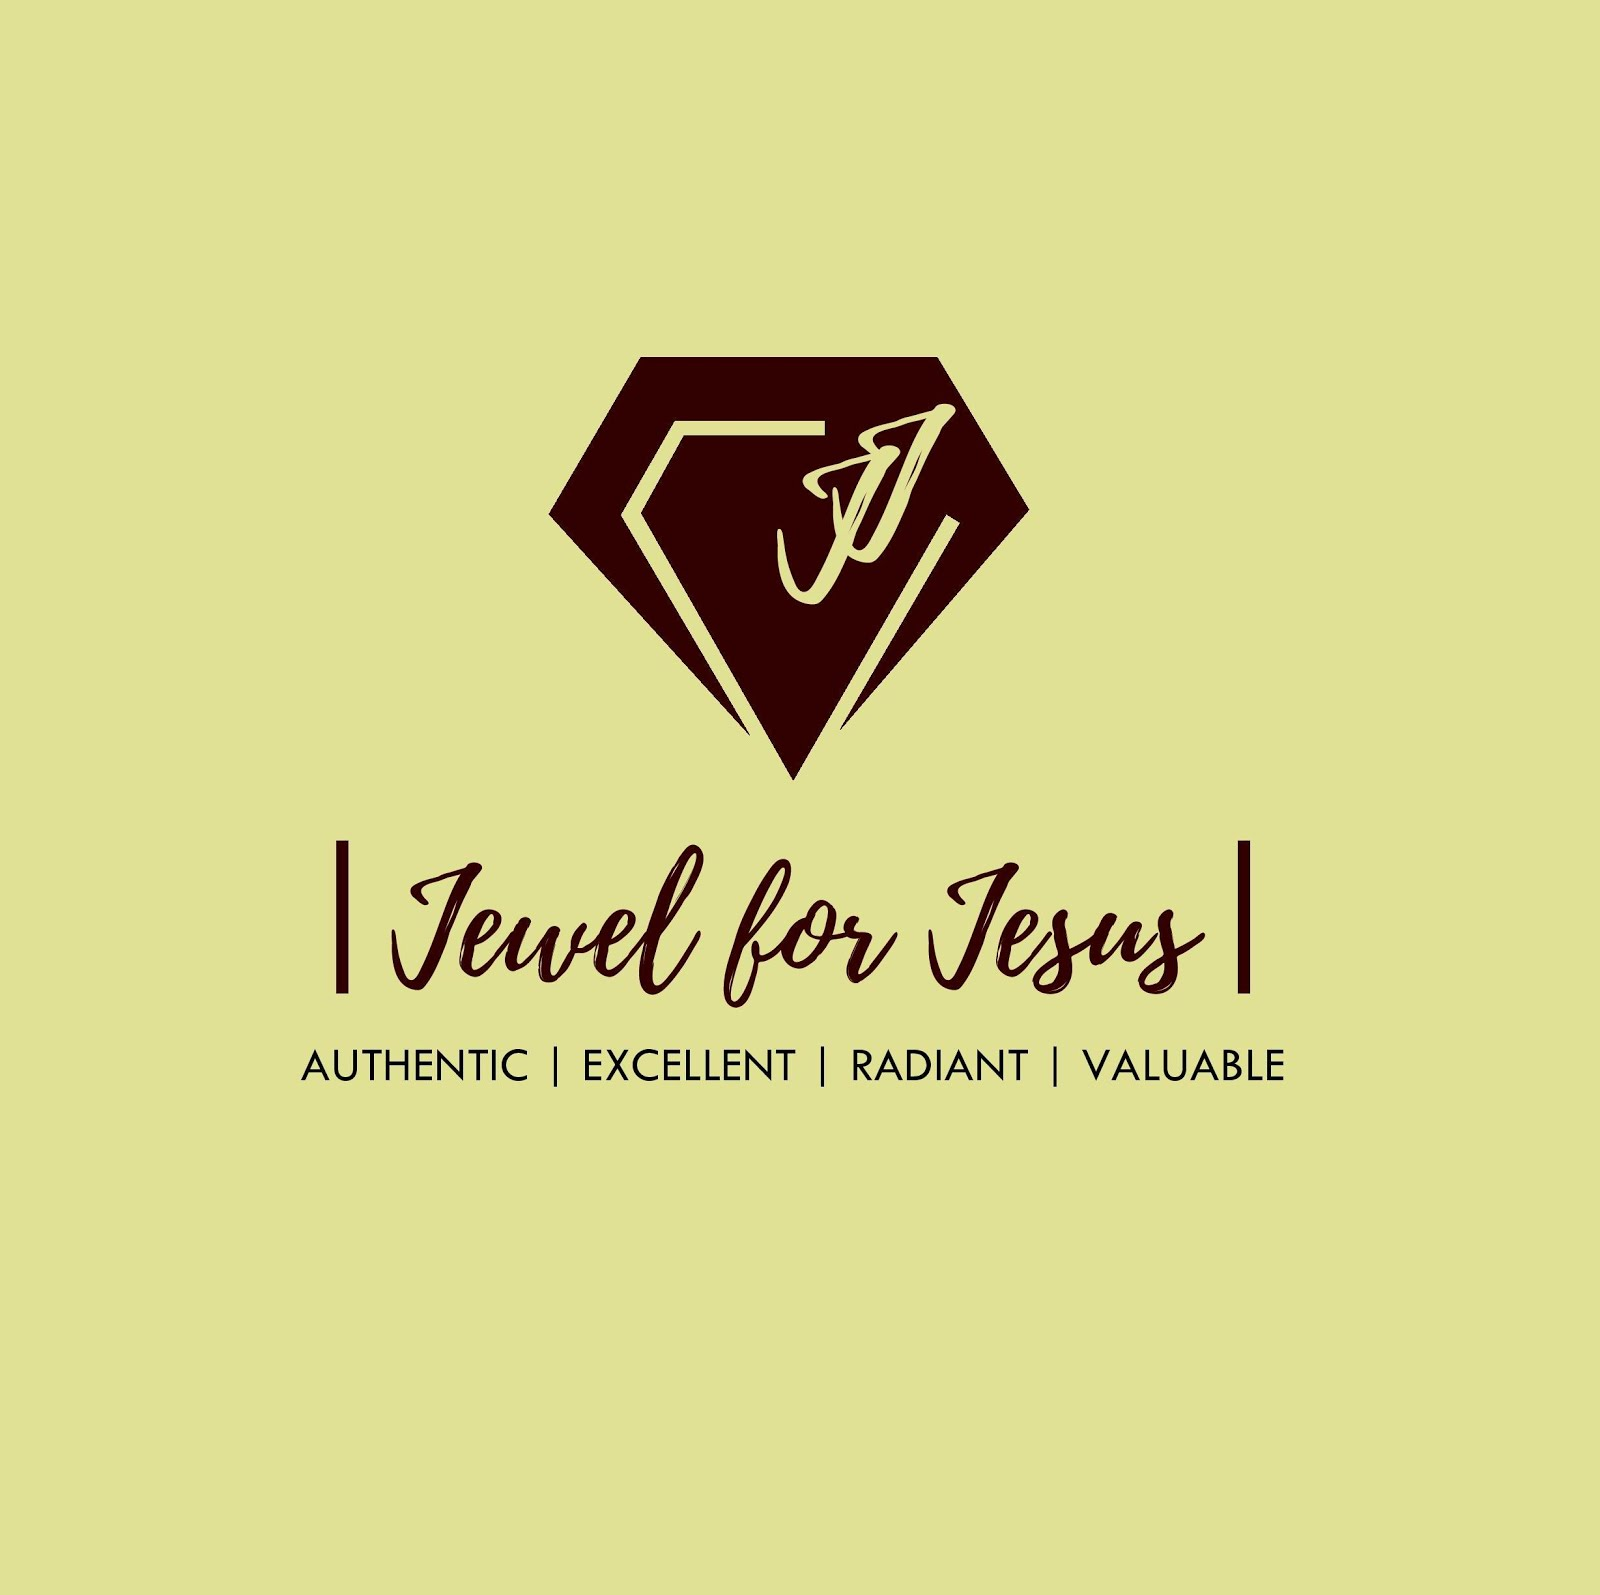 Jewel For Jesus